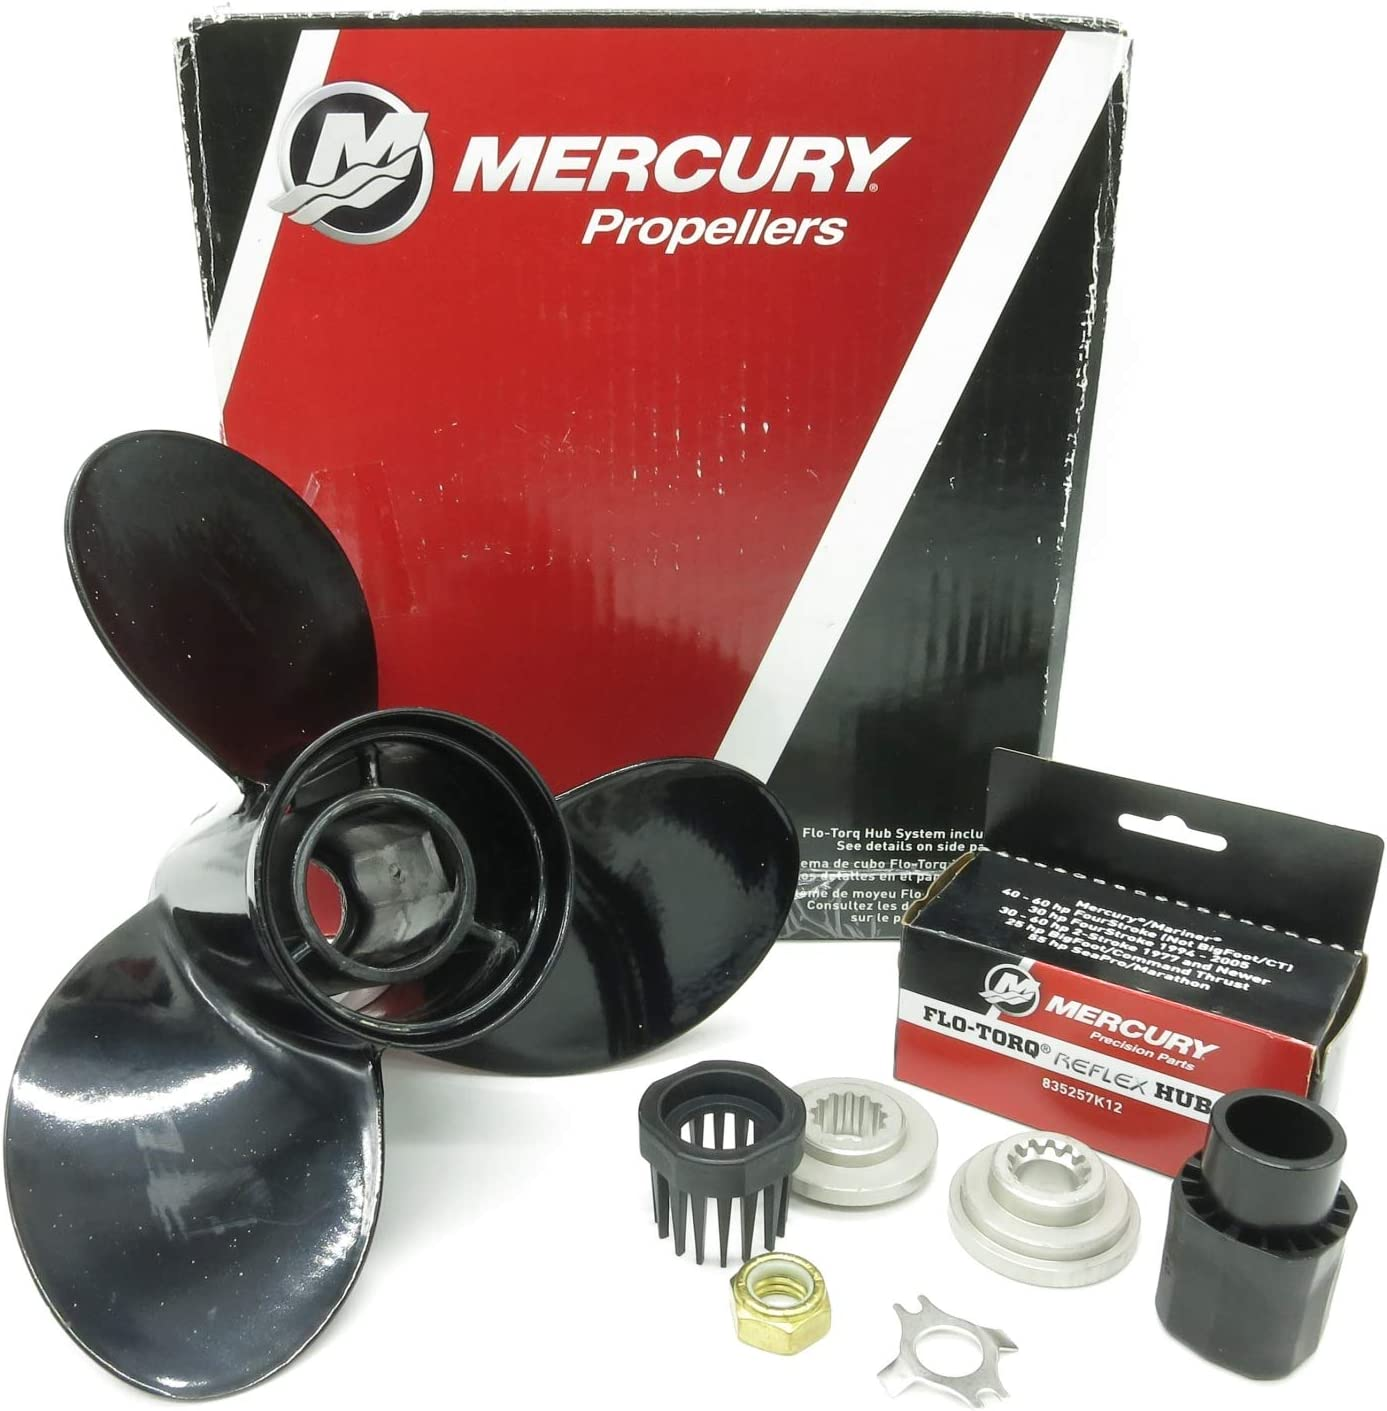 Aluminum Outboard Propeller 10 5//8x12 Pitch for Mercury 25-70HP 48-73134A45